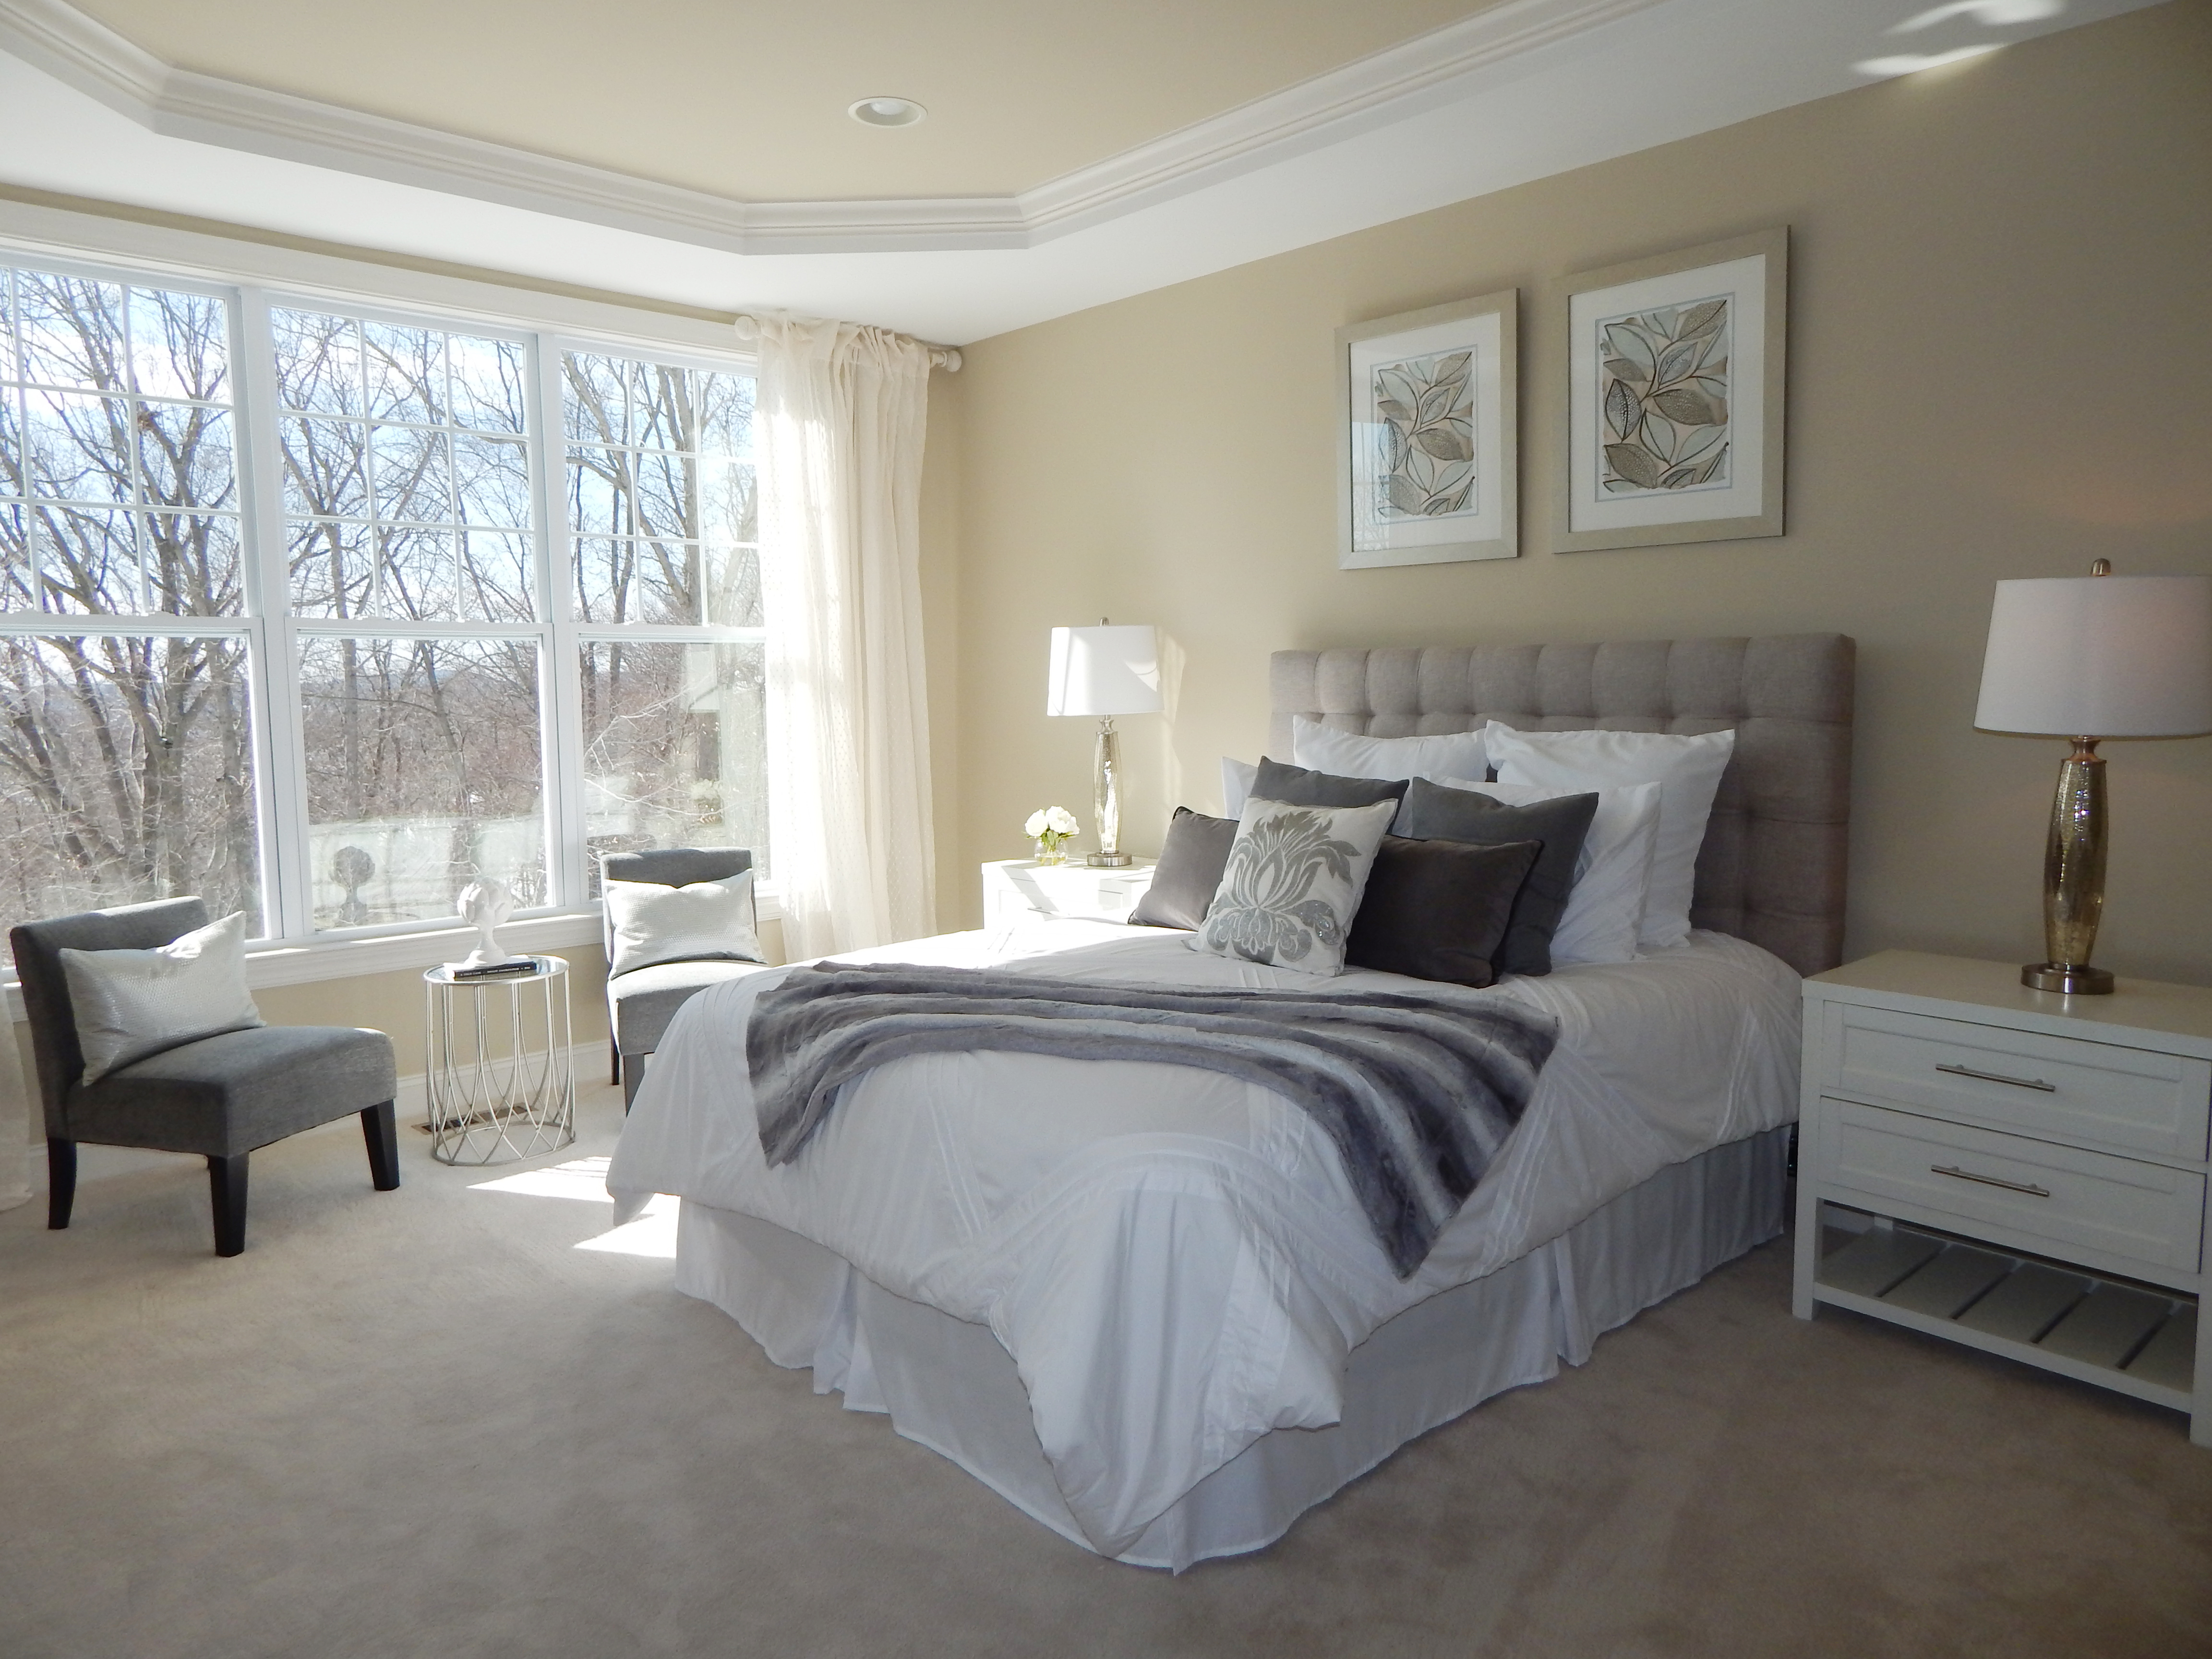 Master bedroom with bed and chairs 9 copy (9)  PJ & Company